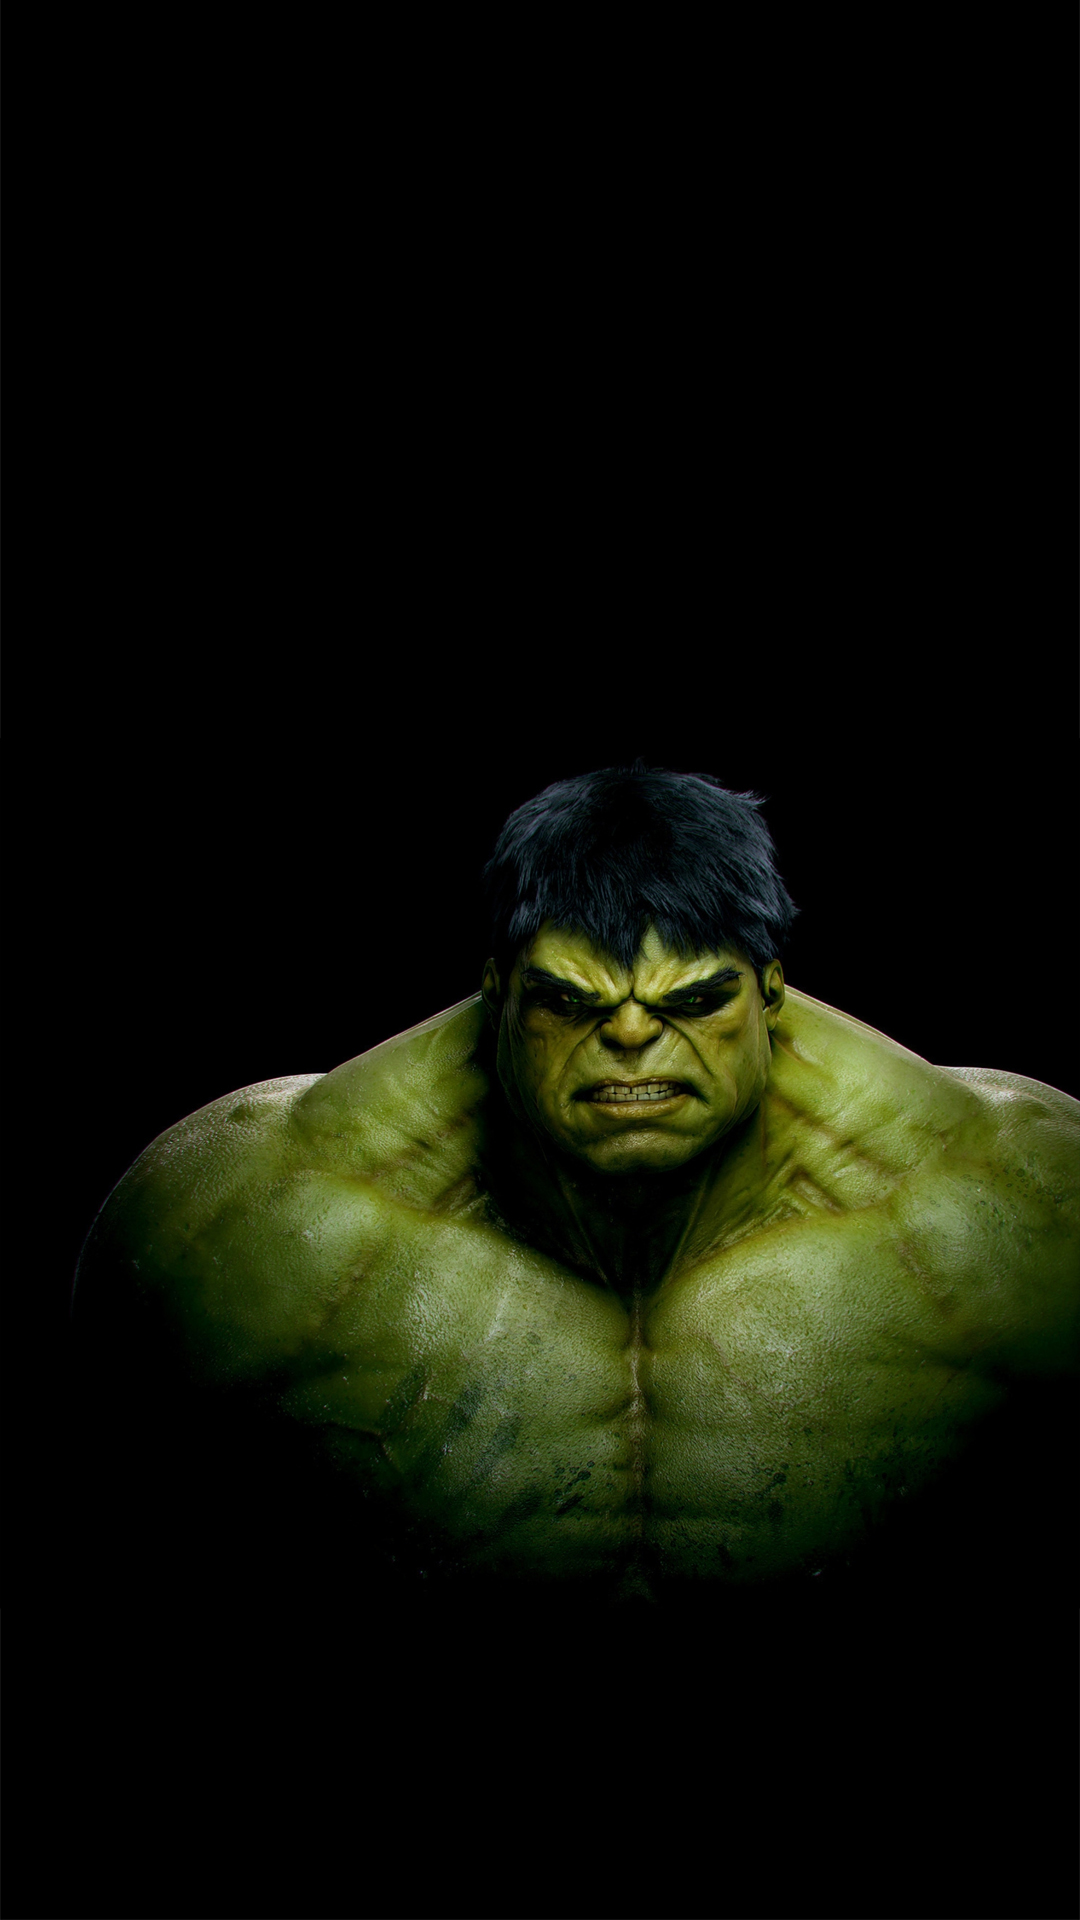 Incredible Hulk HTC hd wallpaper